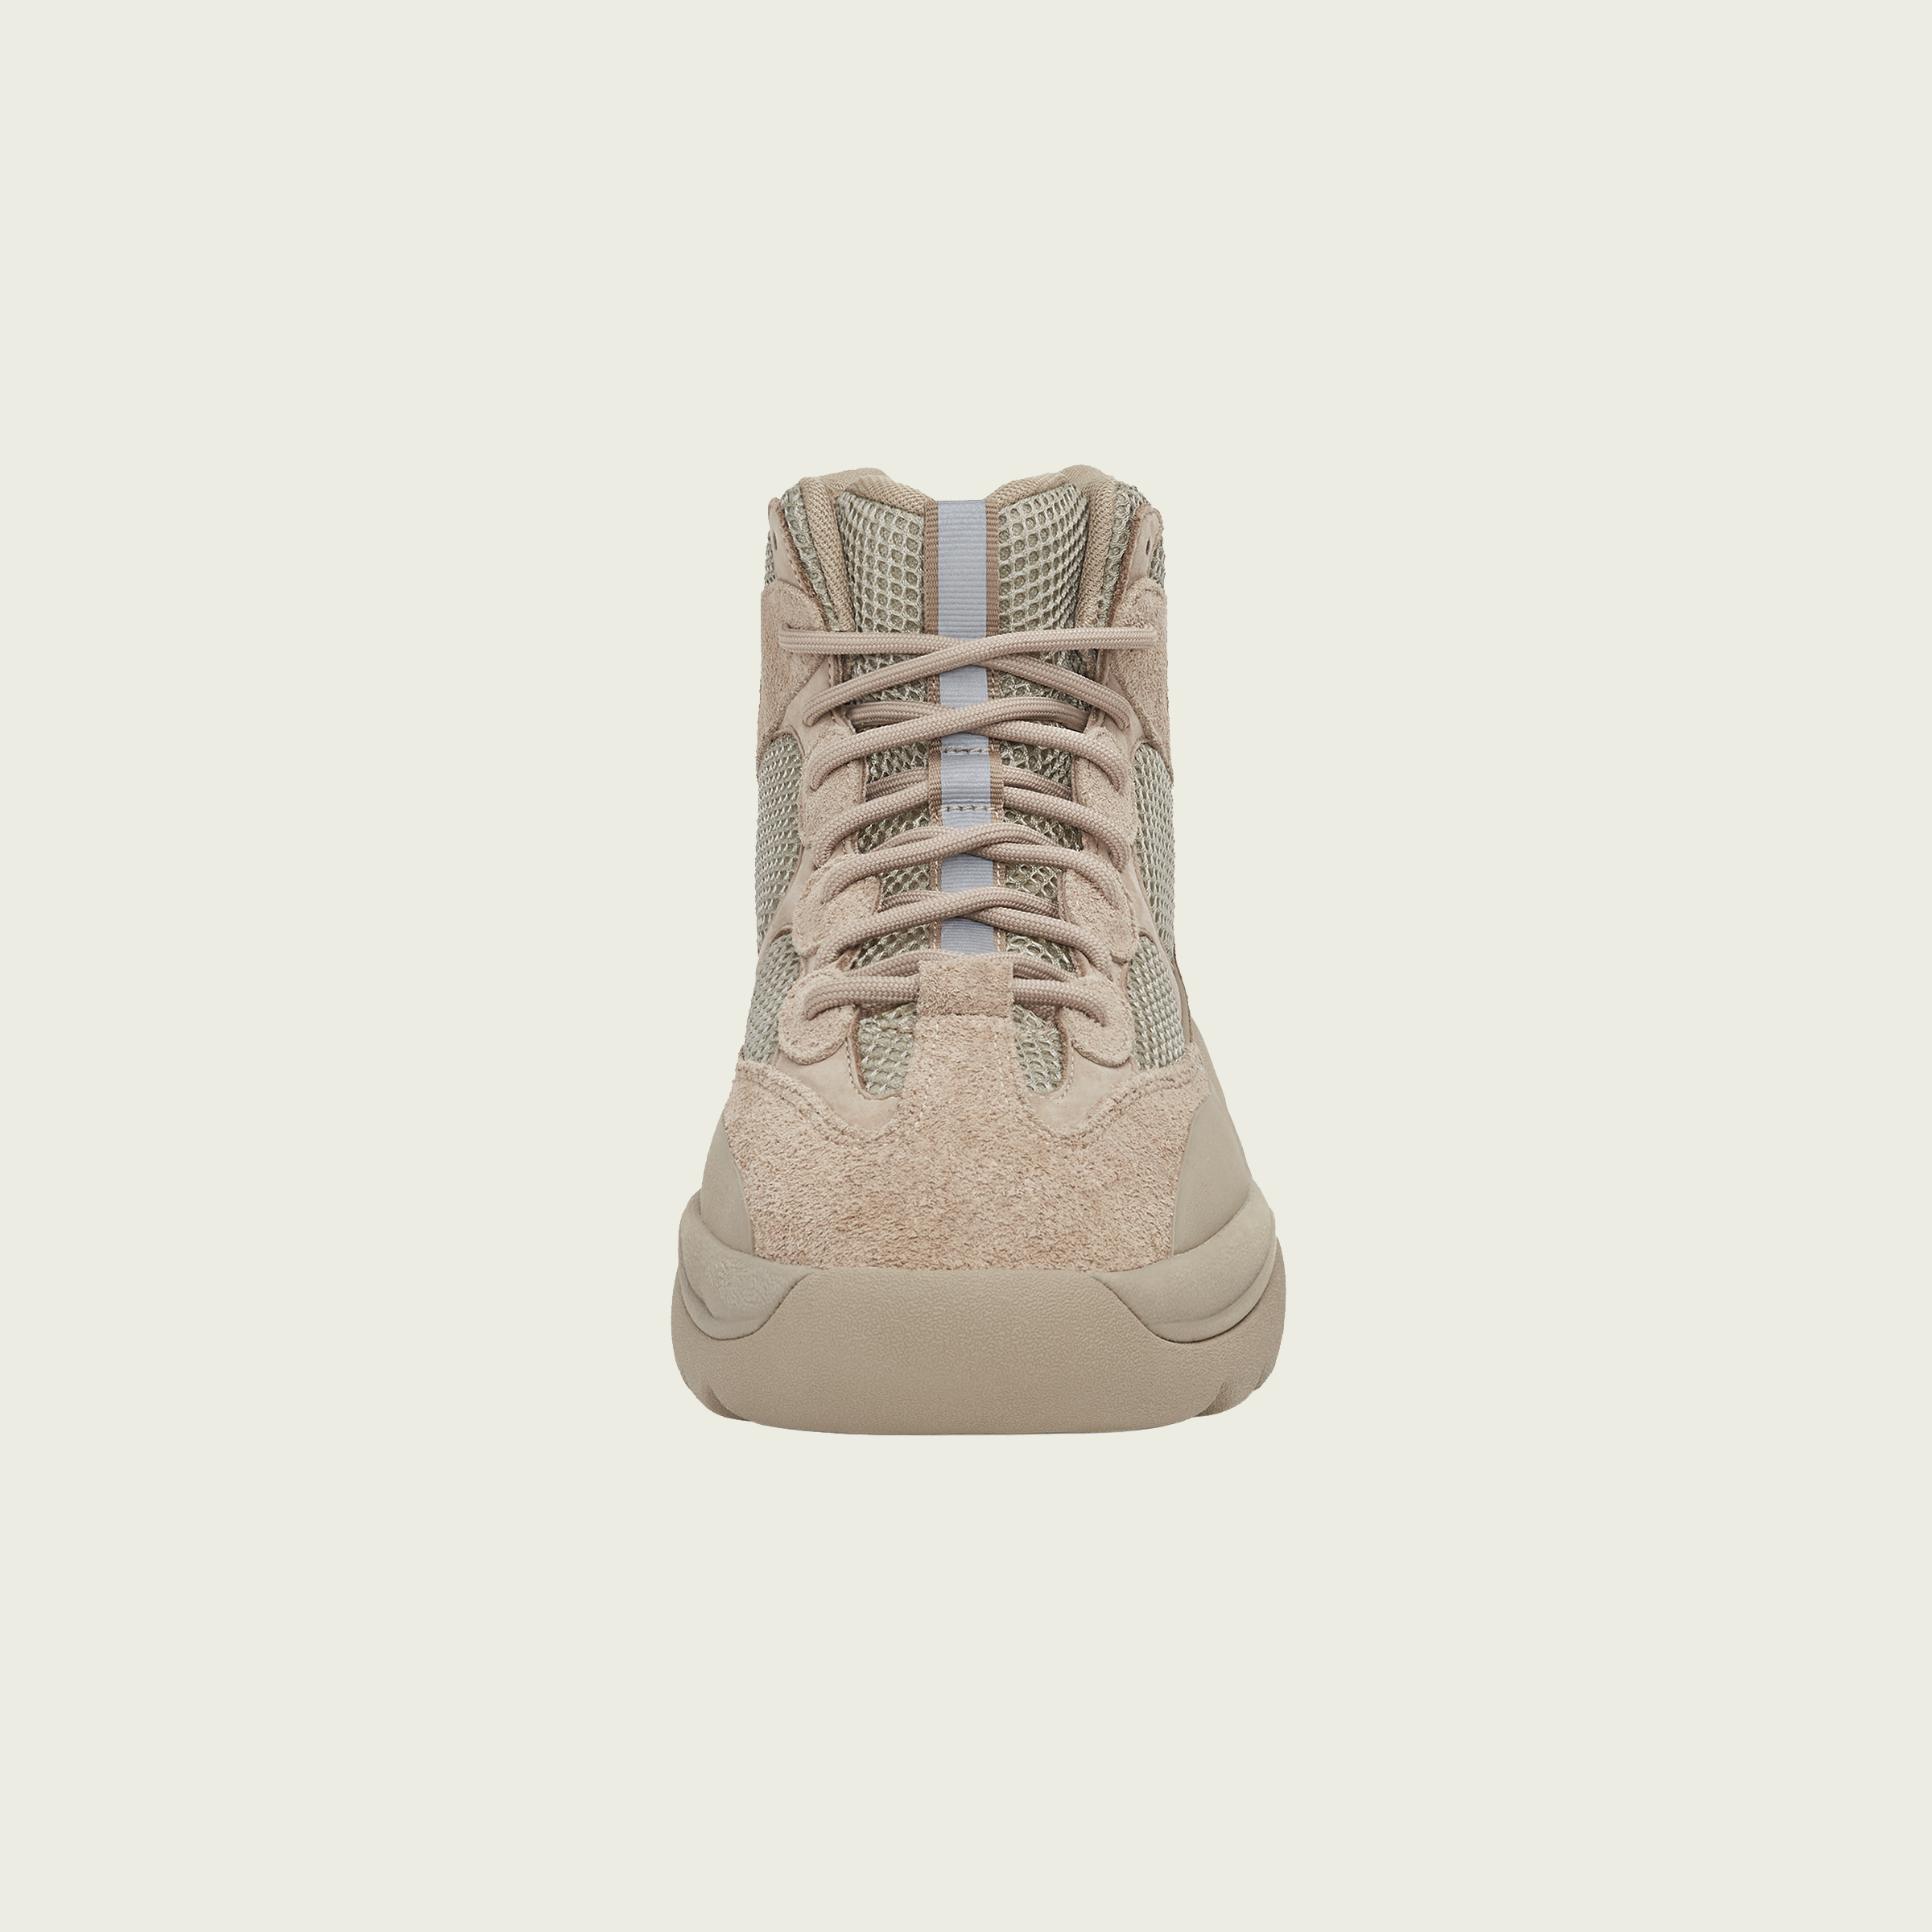 adidas x KANYE WEST Announce The YZY DSRT BT Salt, YZY DSRT BT Rock, And The YZY DSRT BT Oil EG6462 FR AdidasApp